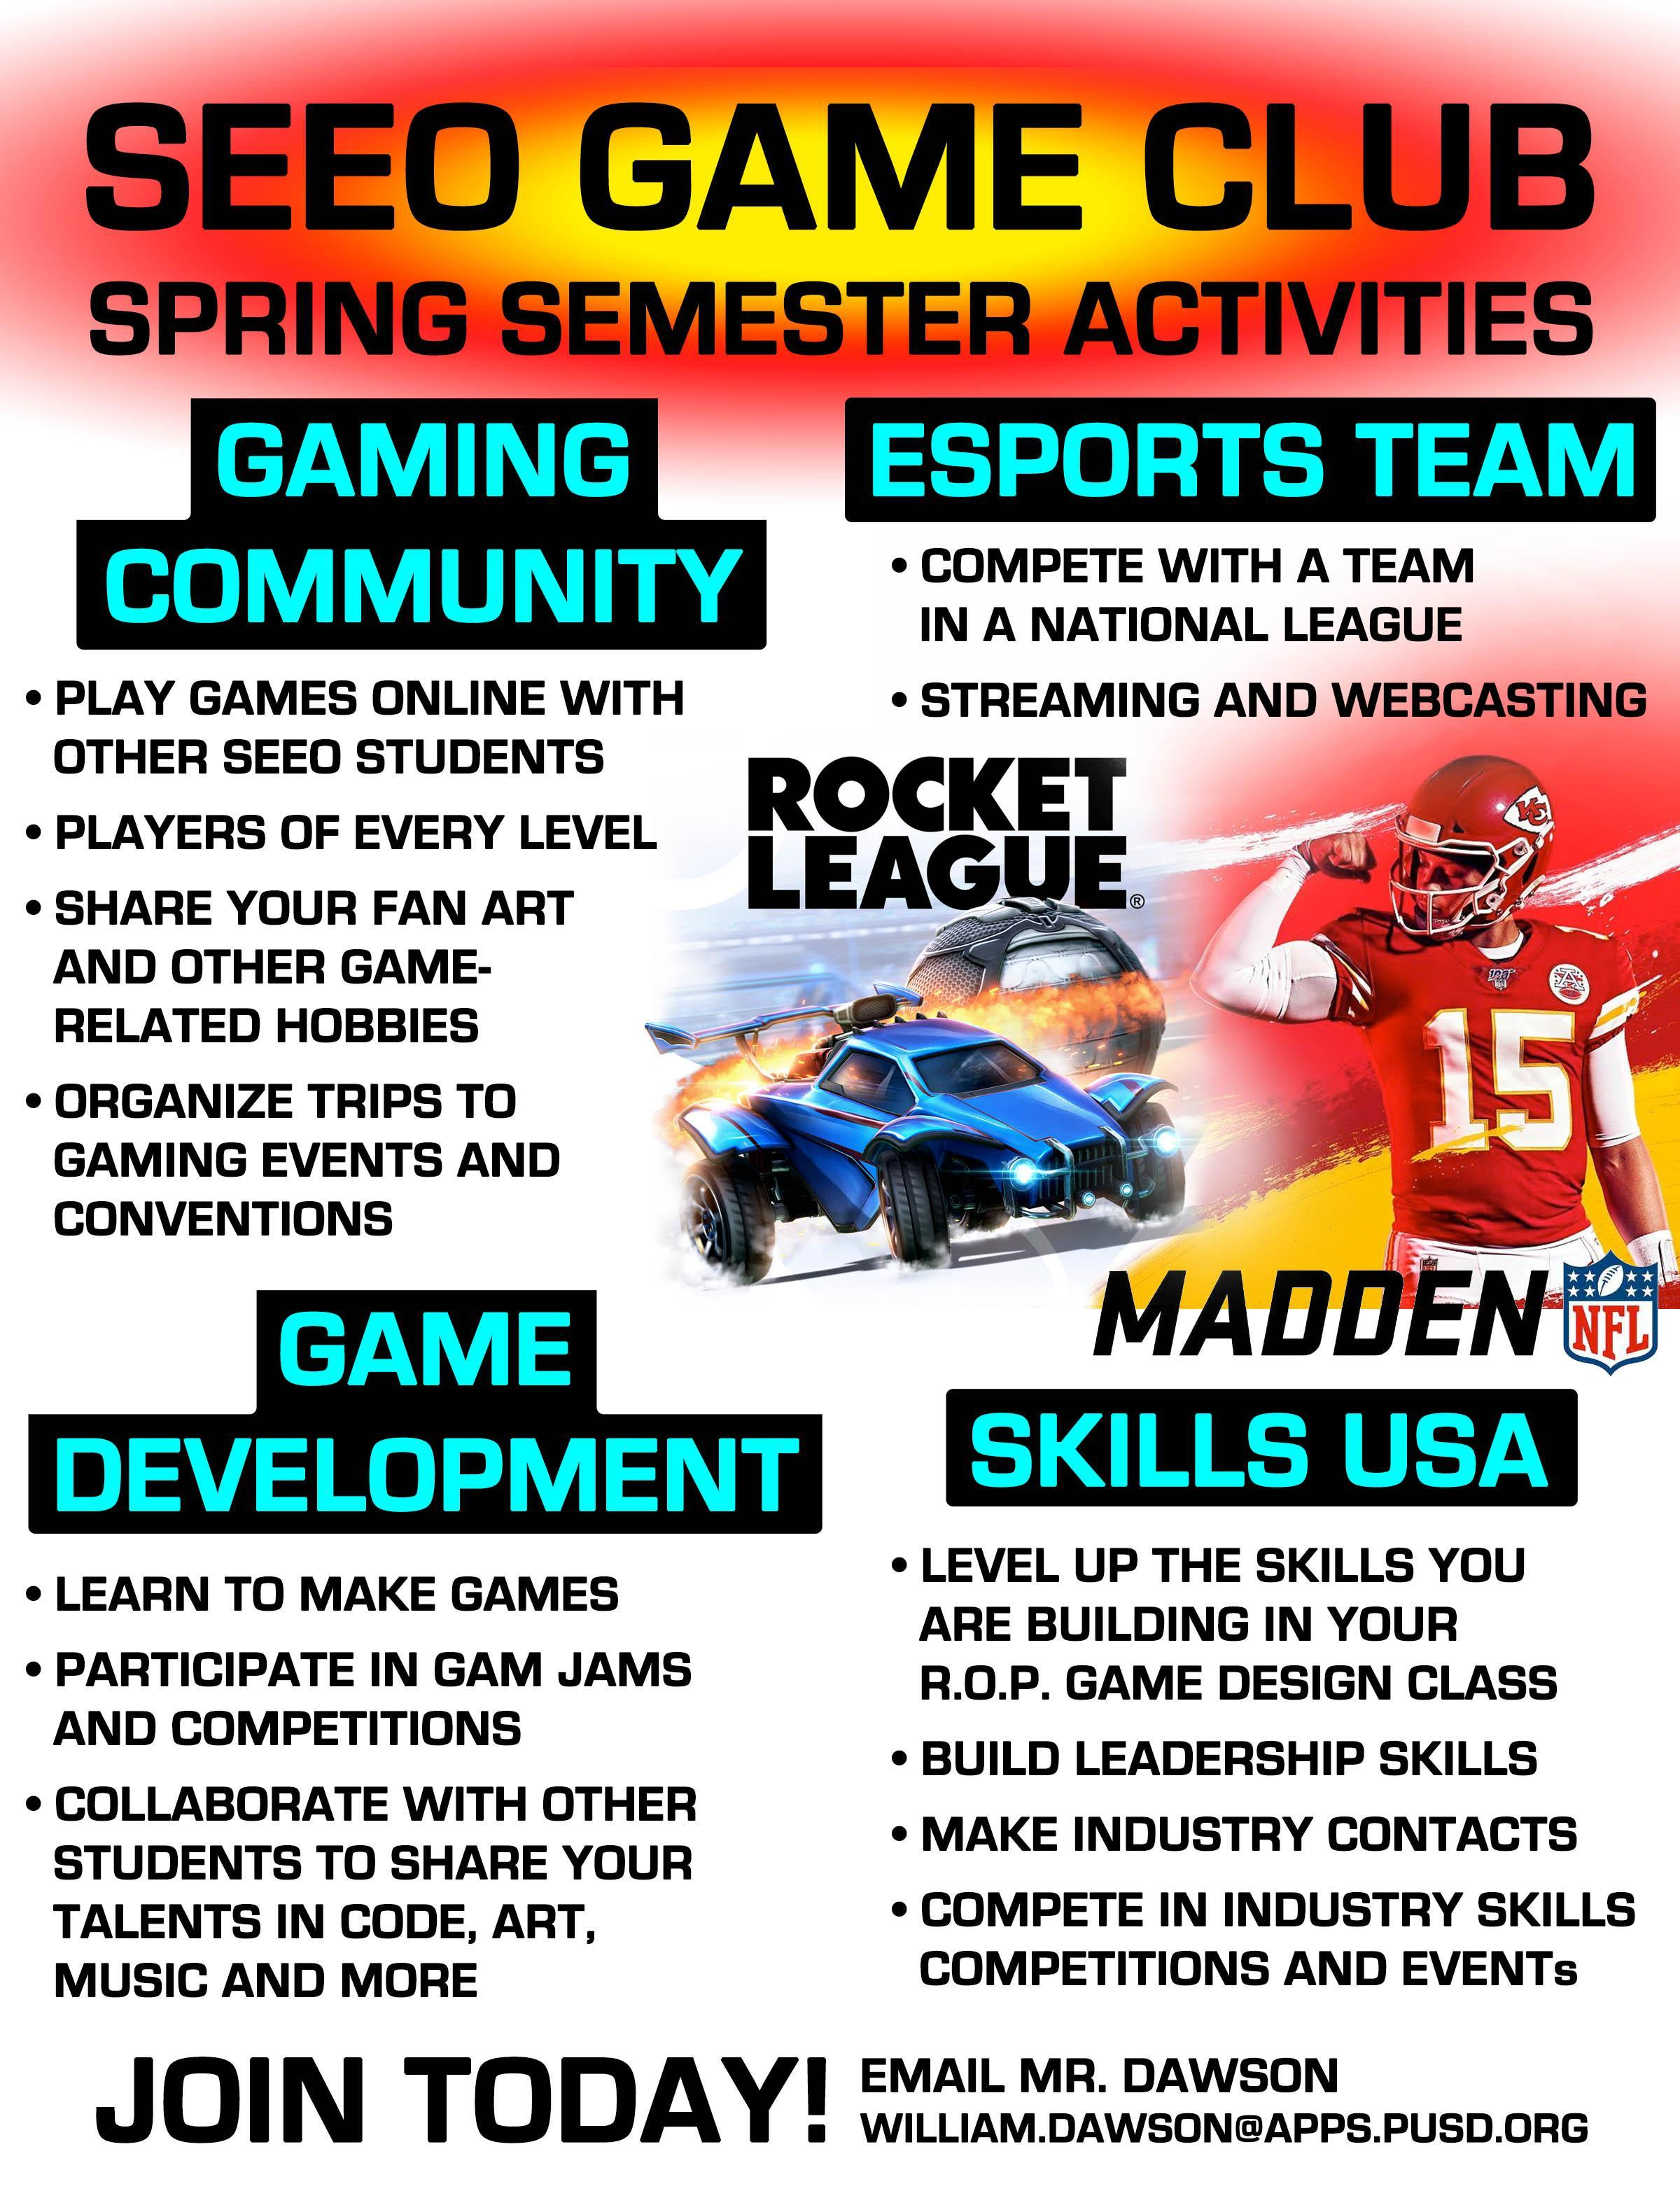 image: spring semester club activities